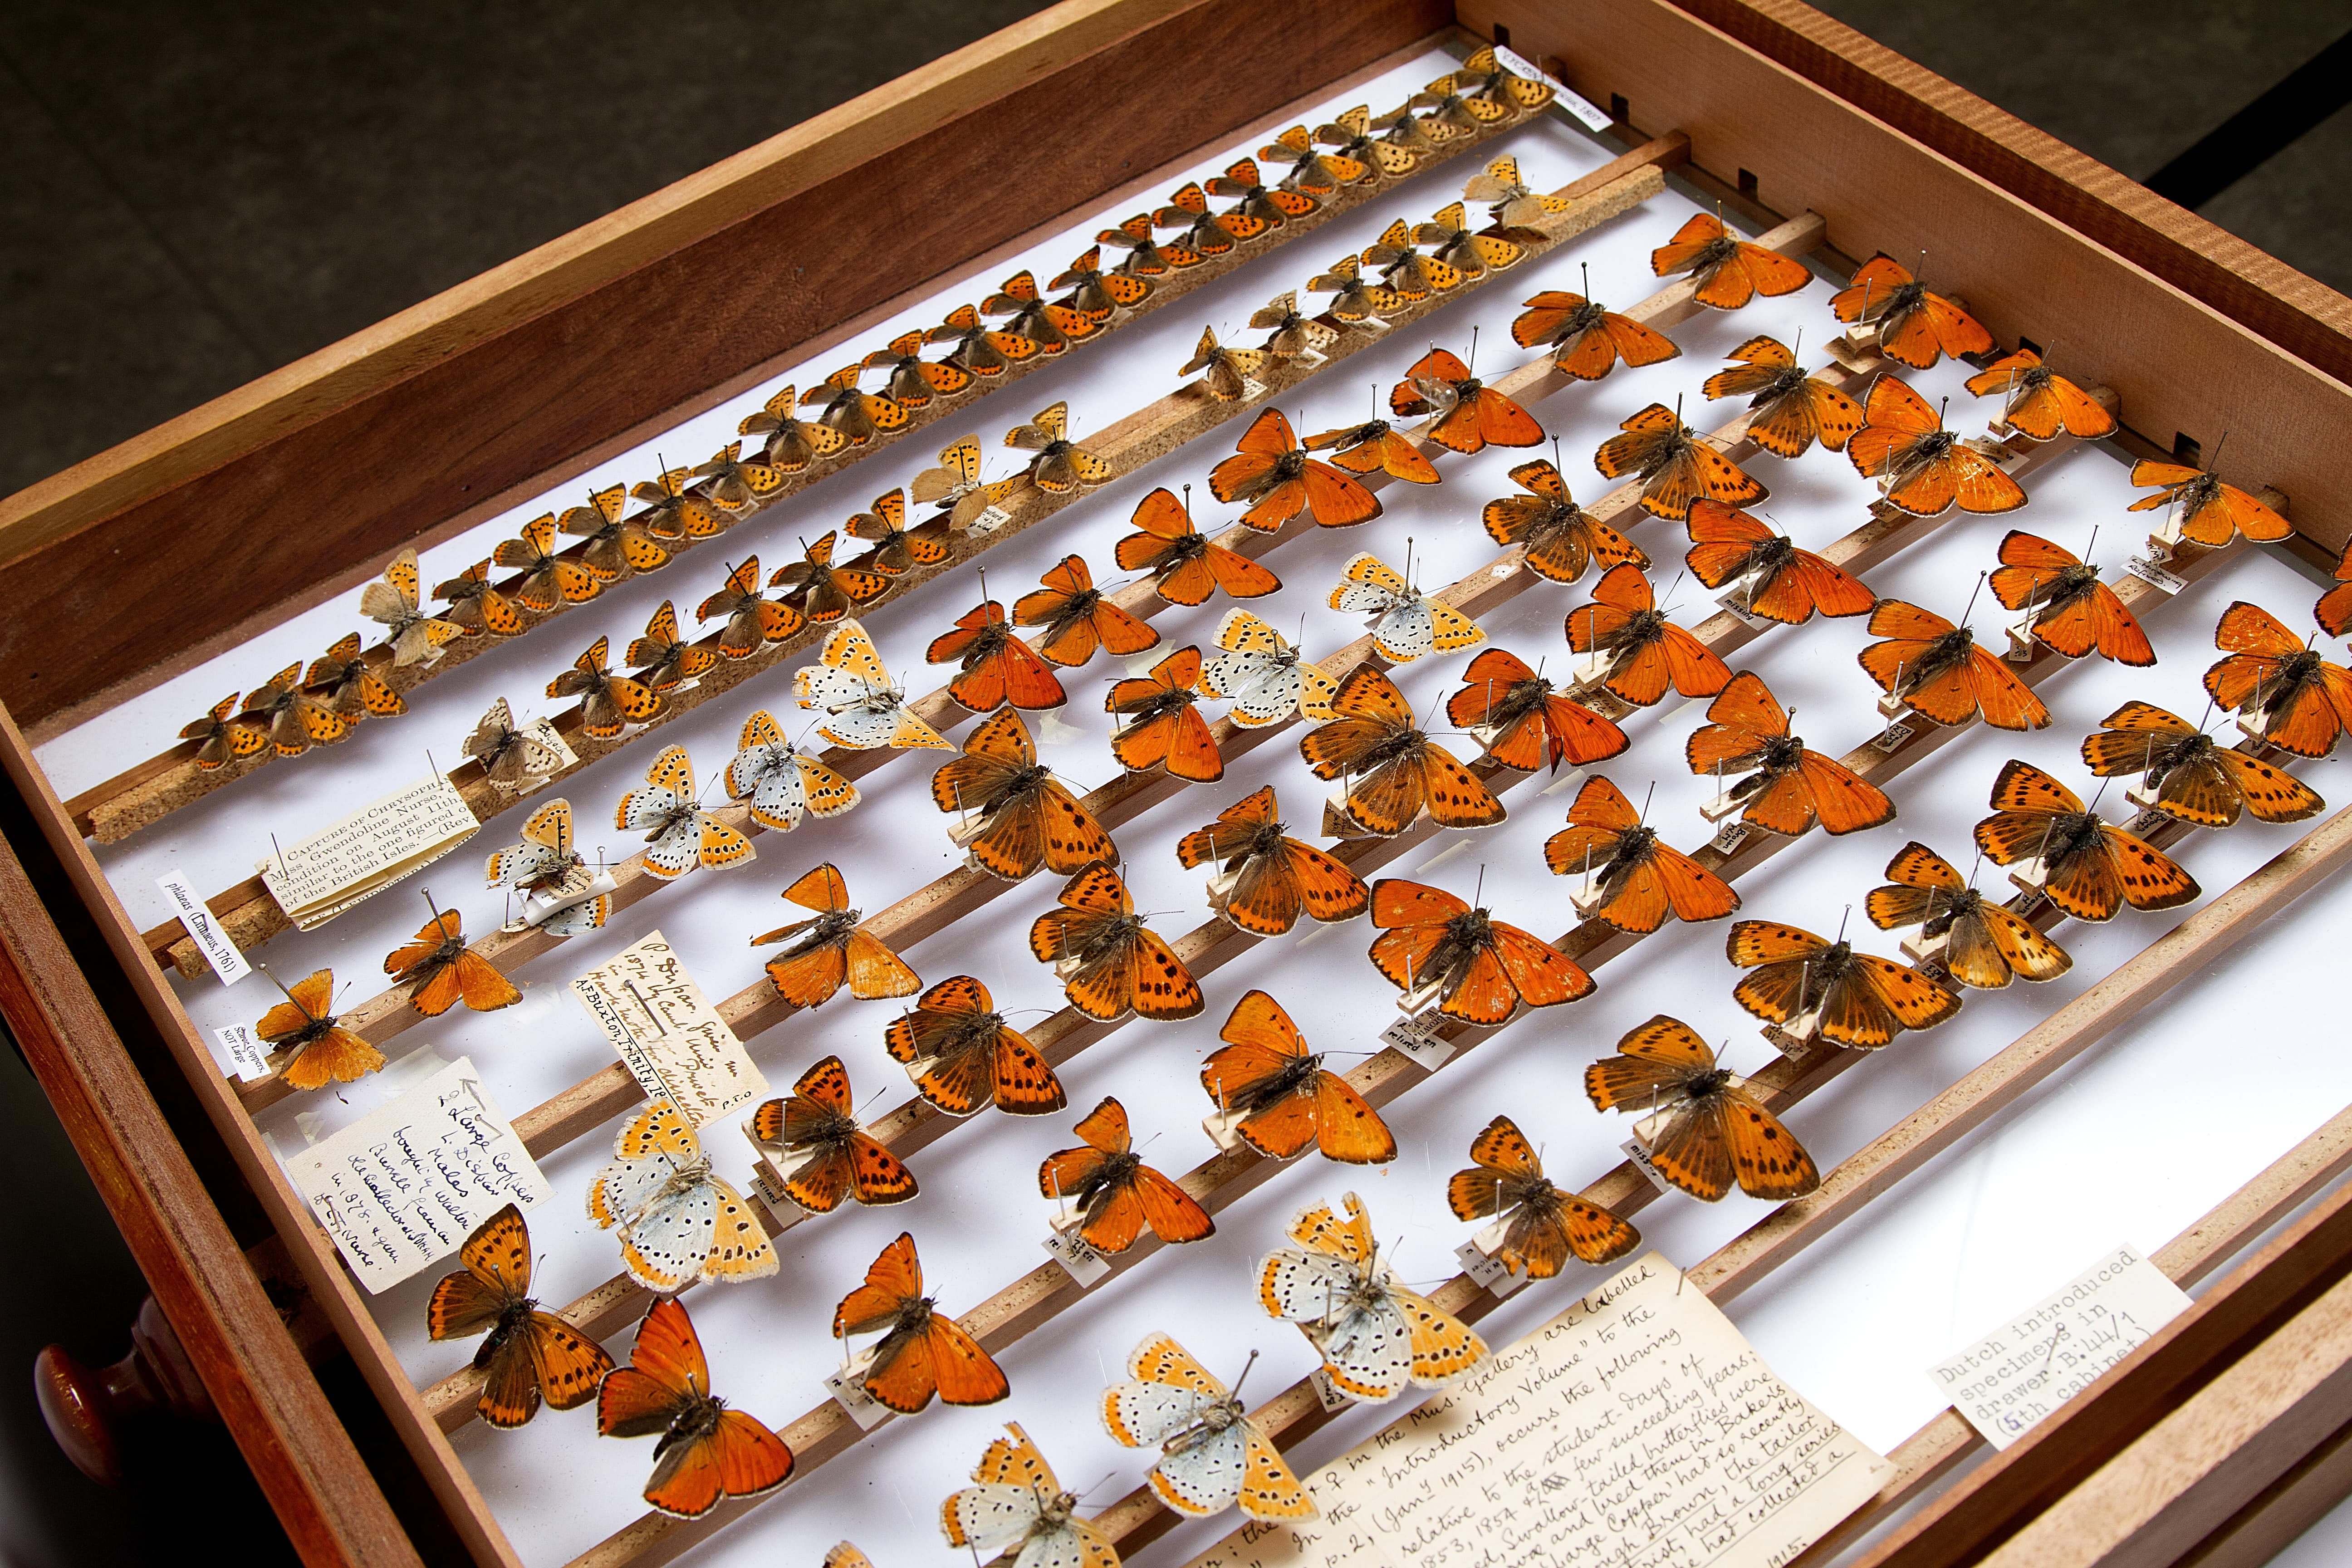 Drawer of butterfly specimens at the University Museum of Zoology, Cambridge